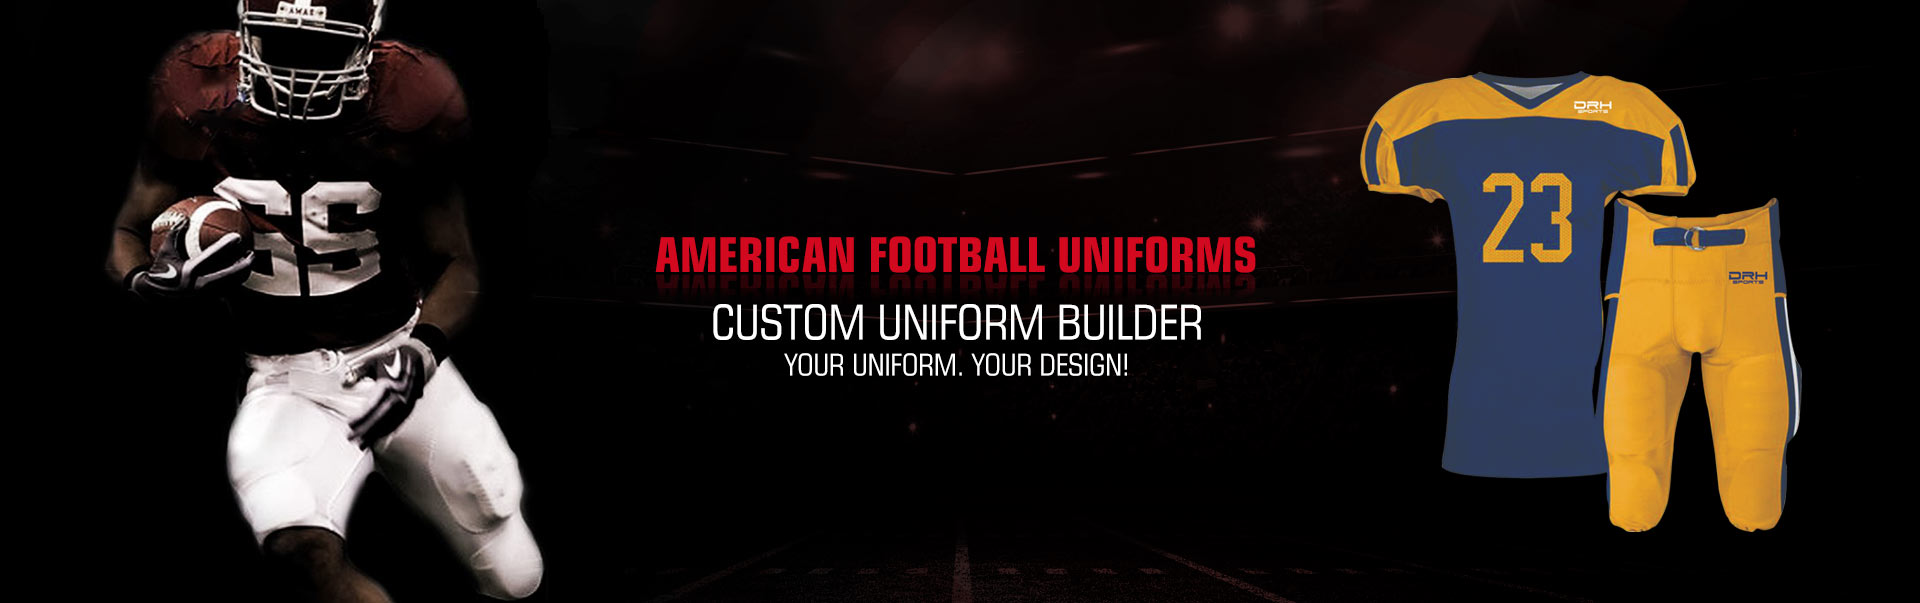 American Football Uniform Wholesaler, Suppliers in Thornton